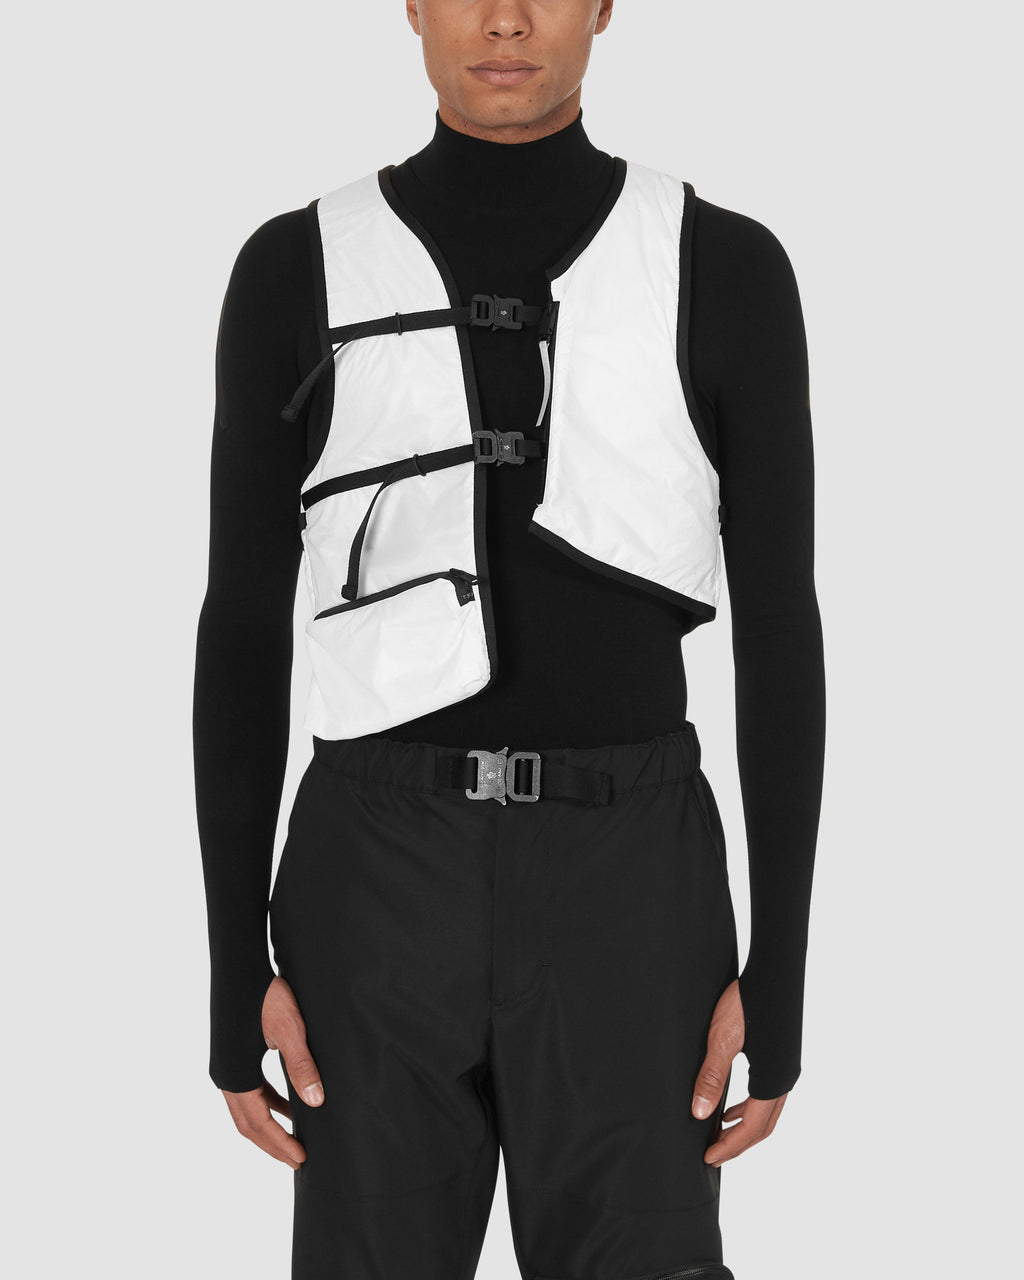 1017 ALYX 9SM | MONCLER HAND WARMER VEST | Outerwear | Google Shopping, Man, Moncler, OUTERWEAR, S20, UNISEX, WHITE